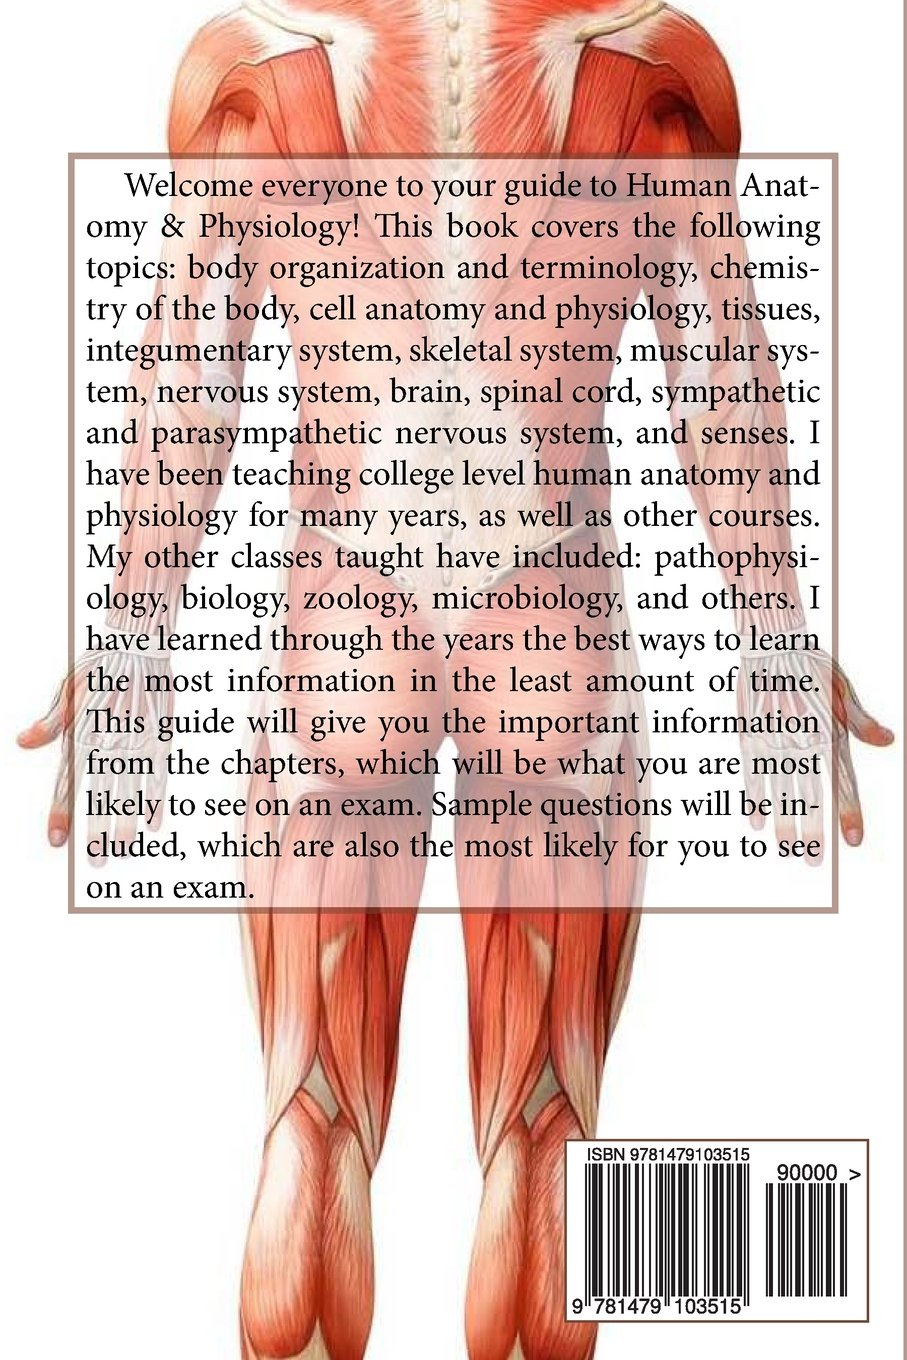 Study Guide to Human Anatomy and Physiology 1: Michael Harrell M.S. ...